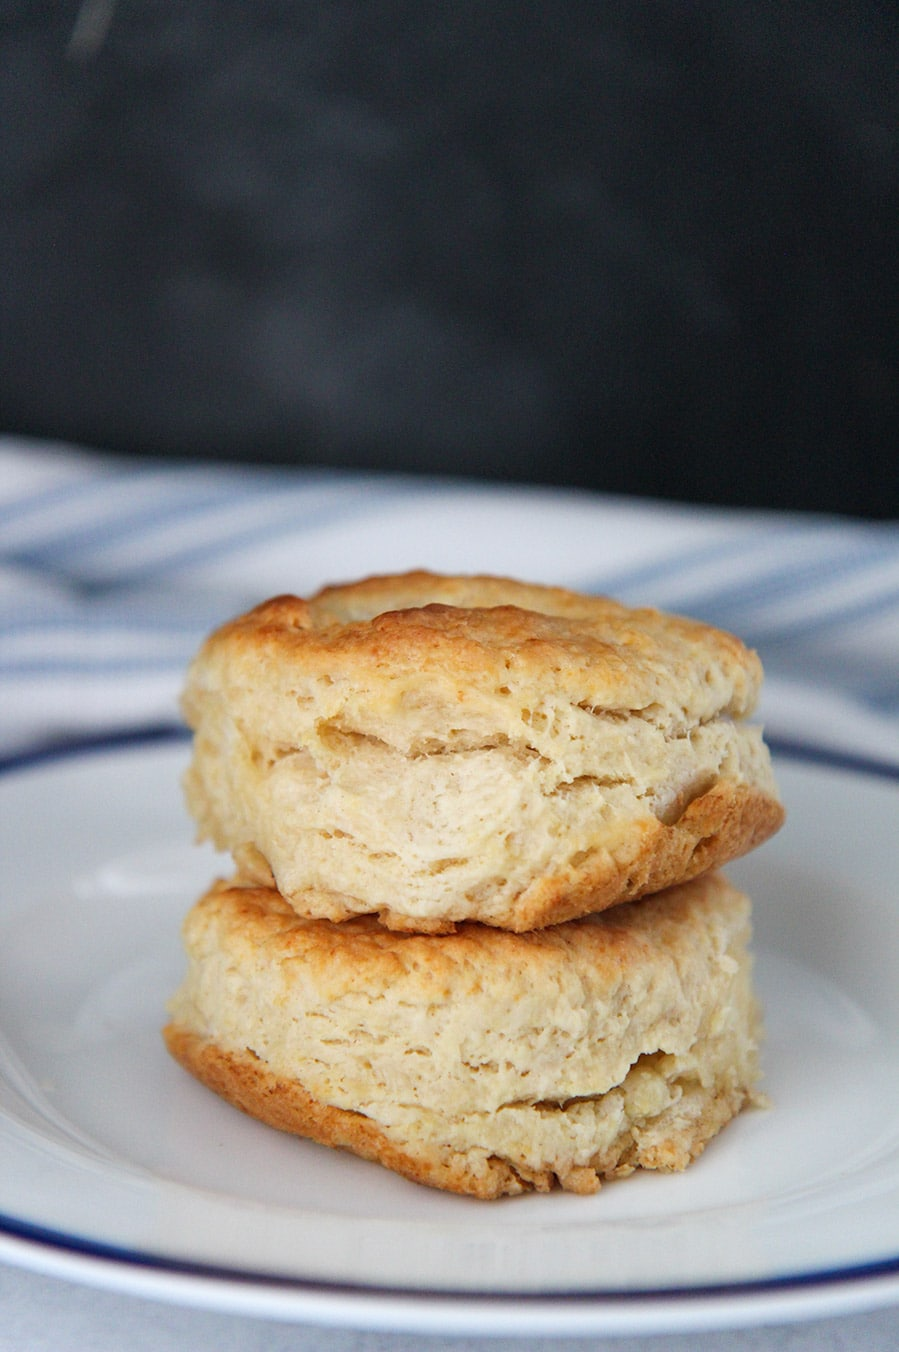 two buttermilk biscuits stacked on top of each other on a white and blue plate.